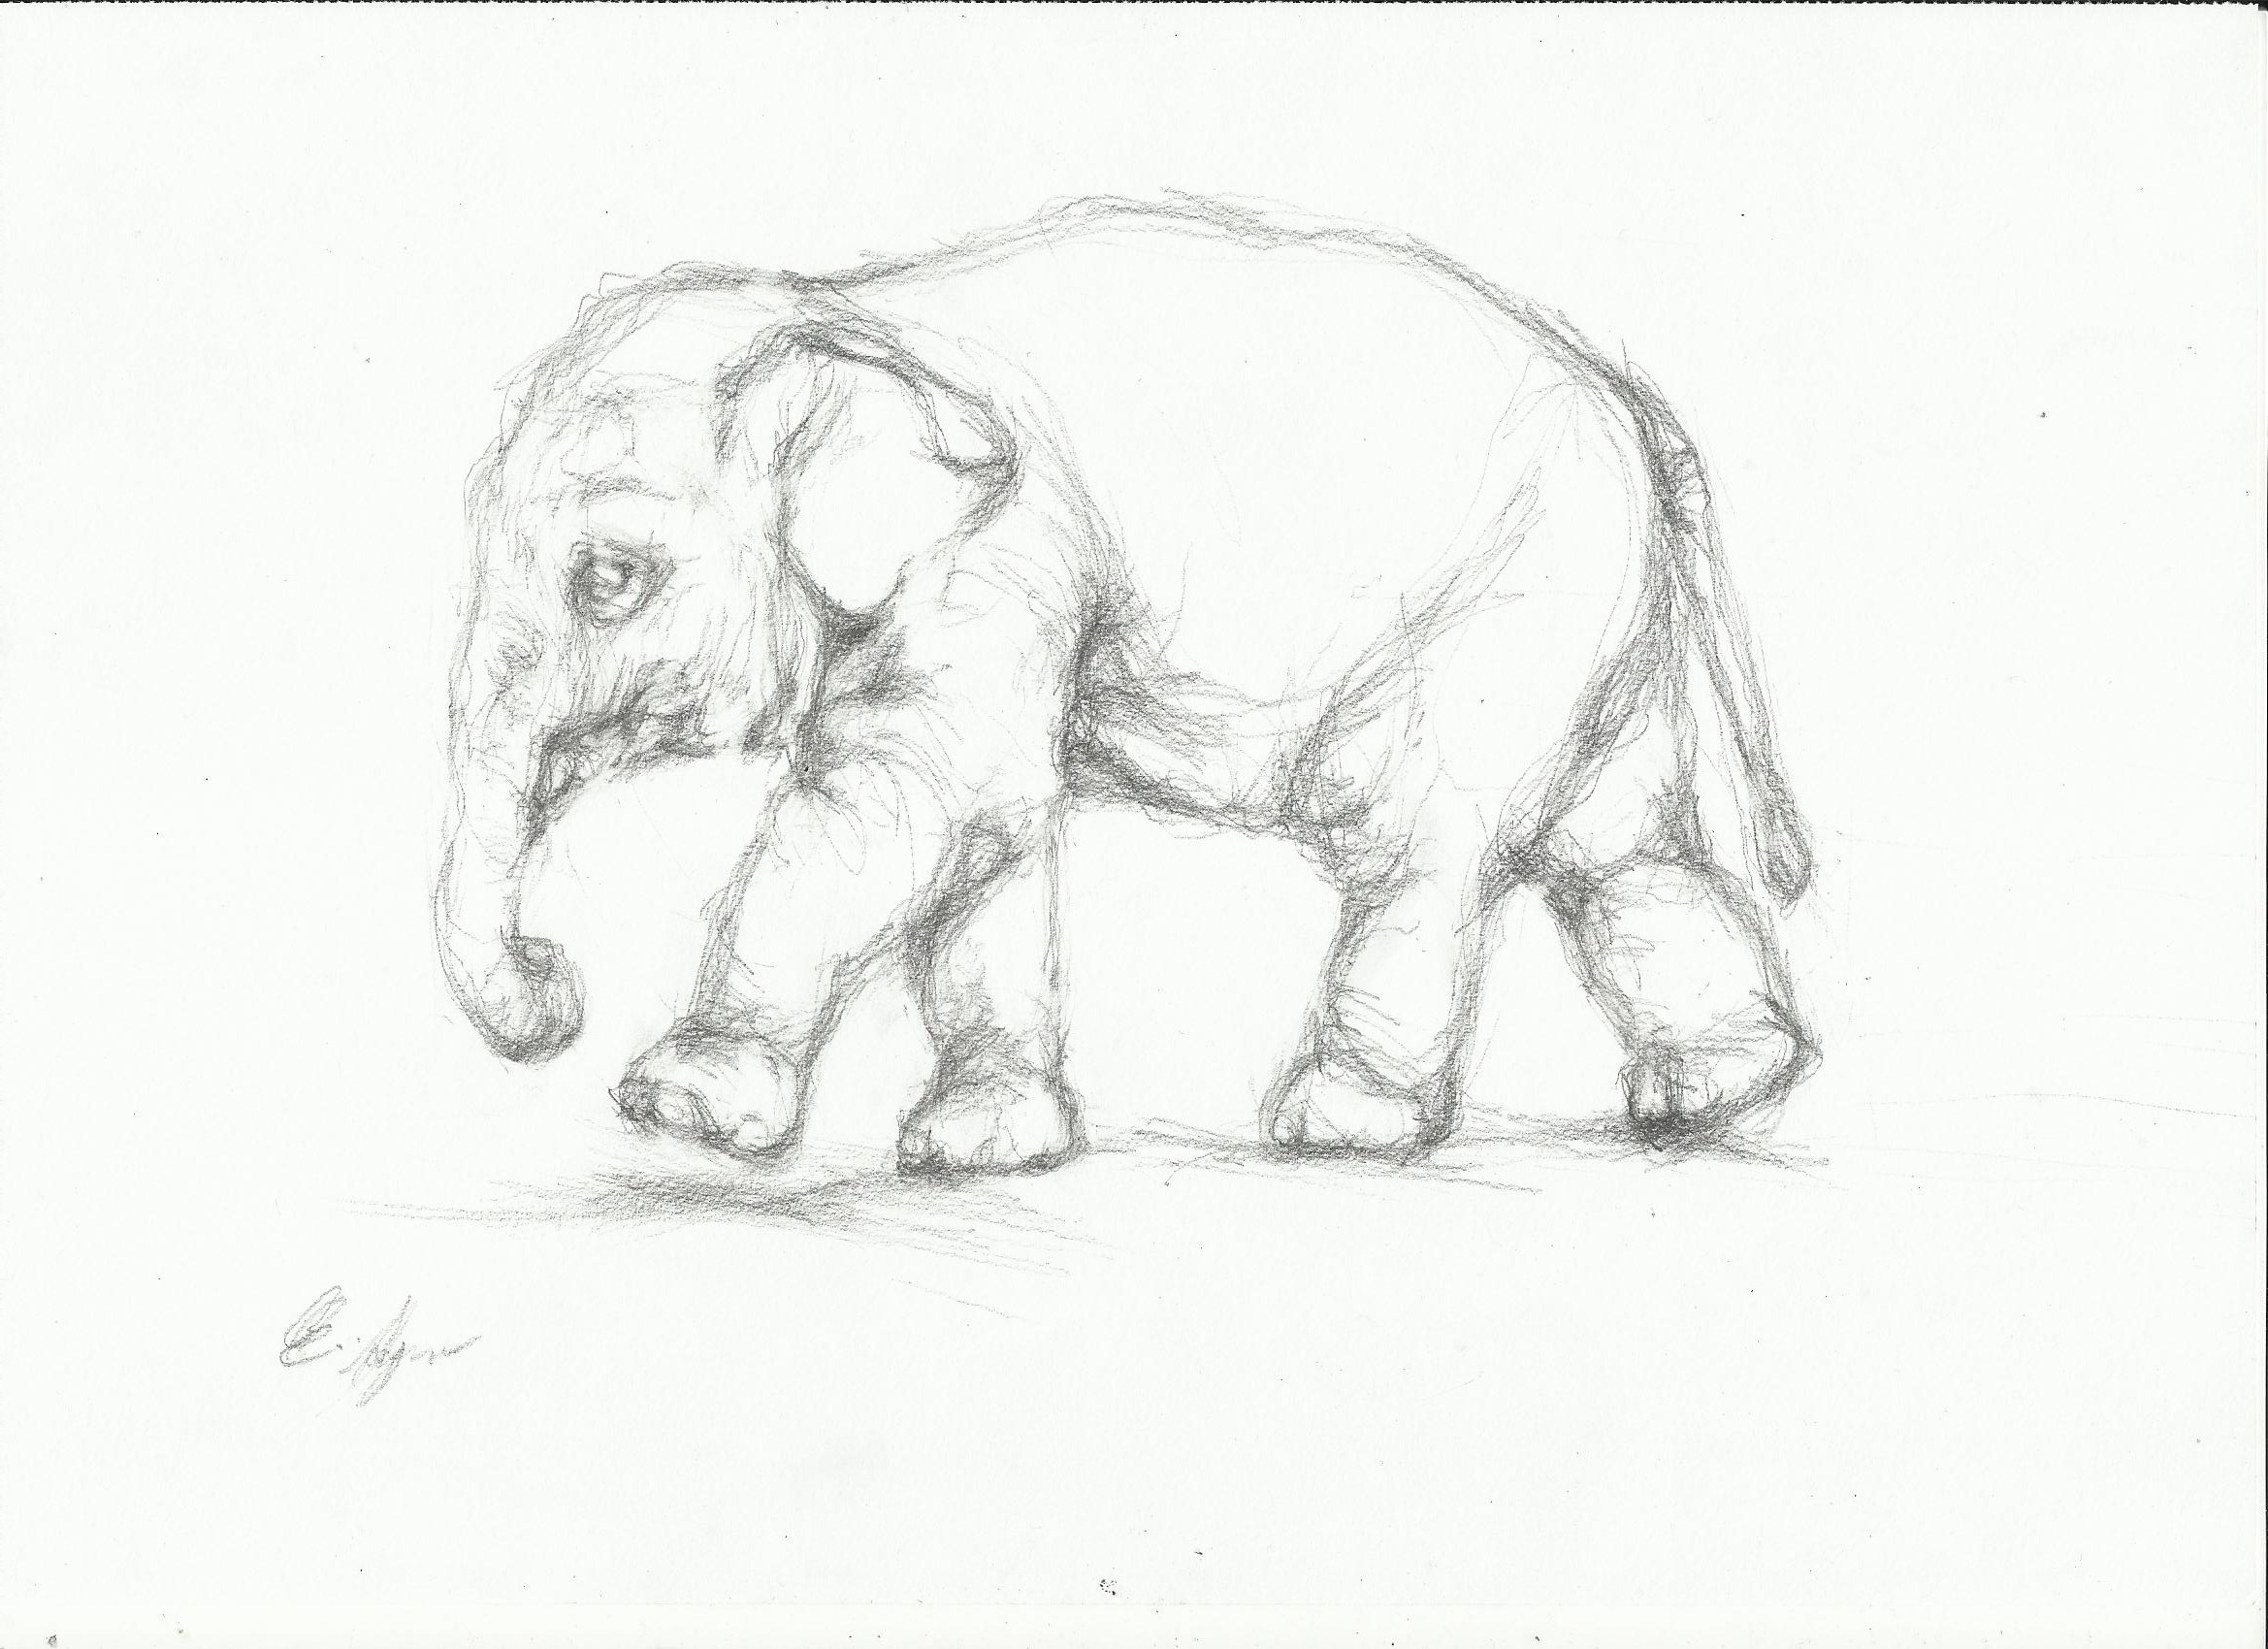 2338x1700 Pencil Drawing Of An Elephant Pencil Drawing Indian Elephant